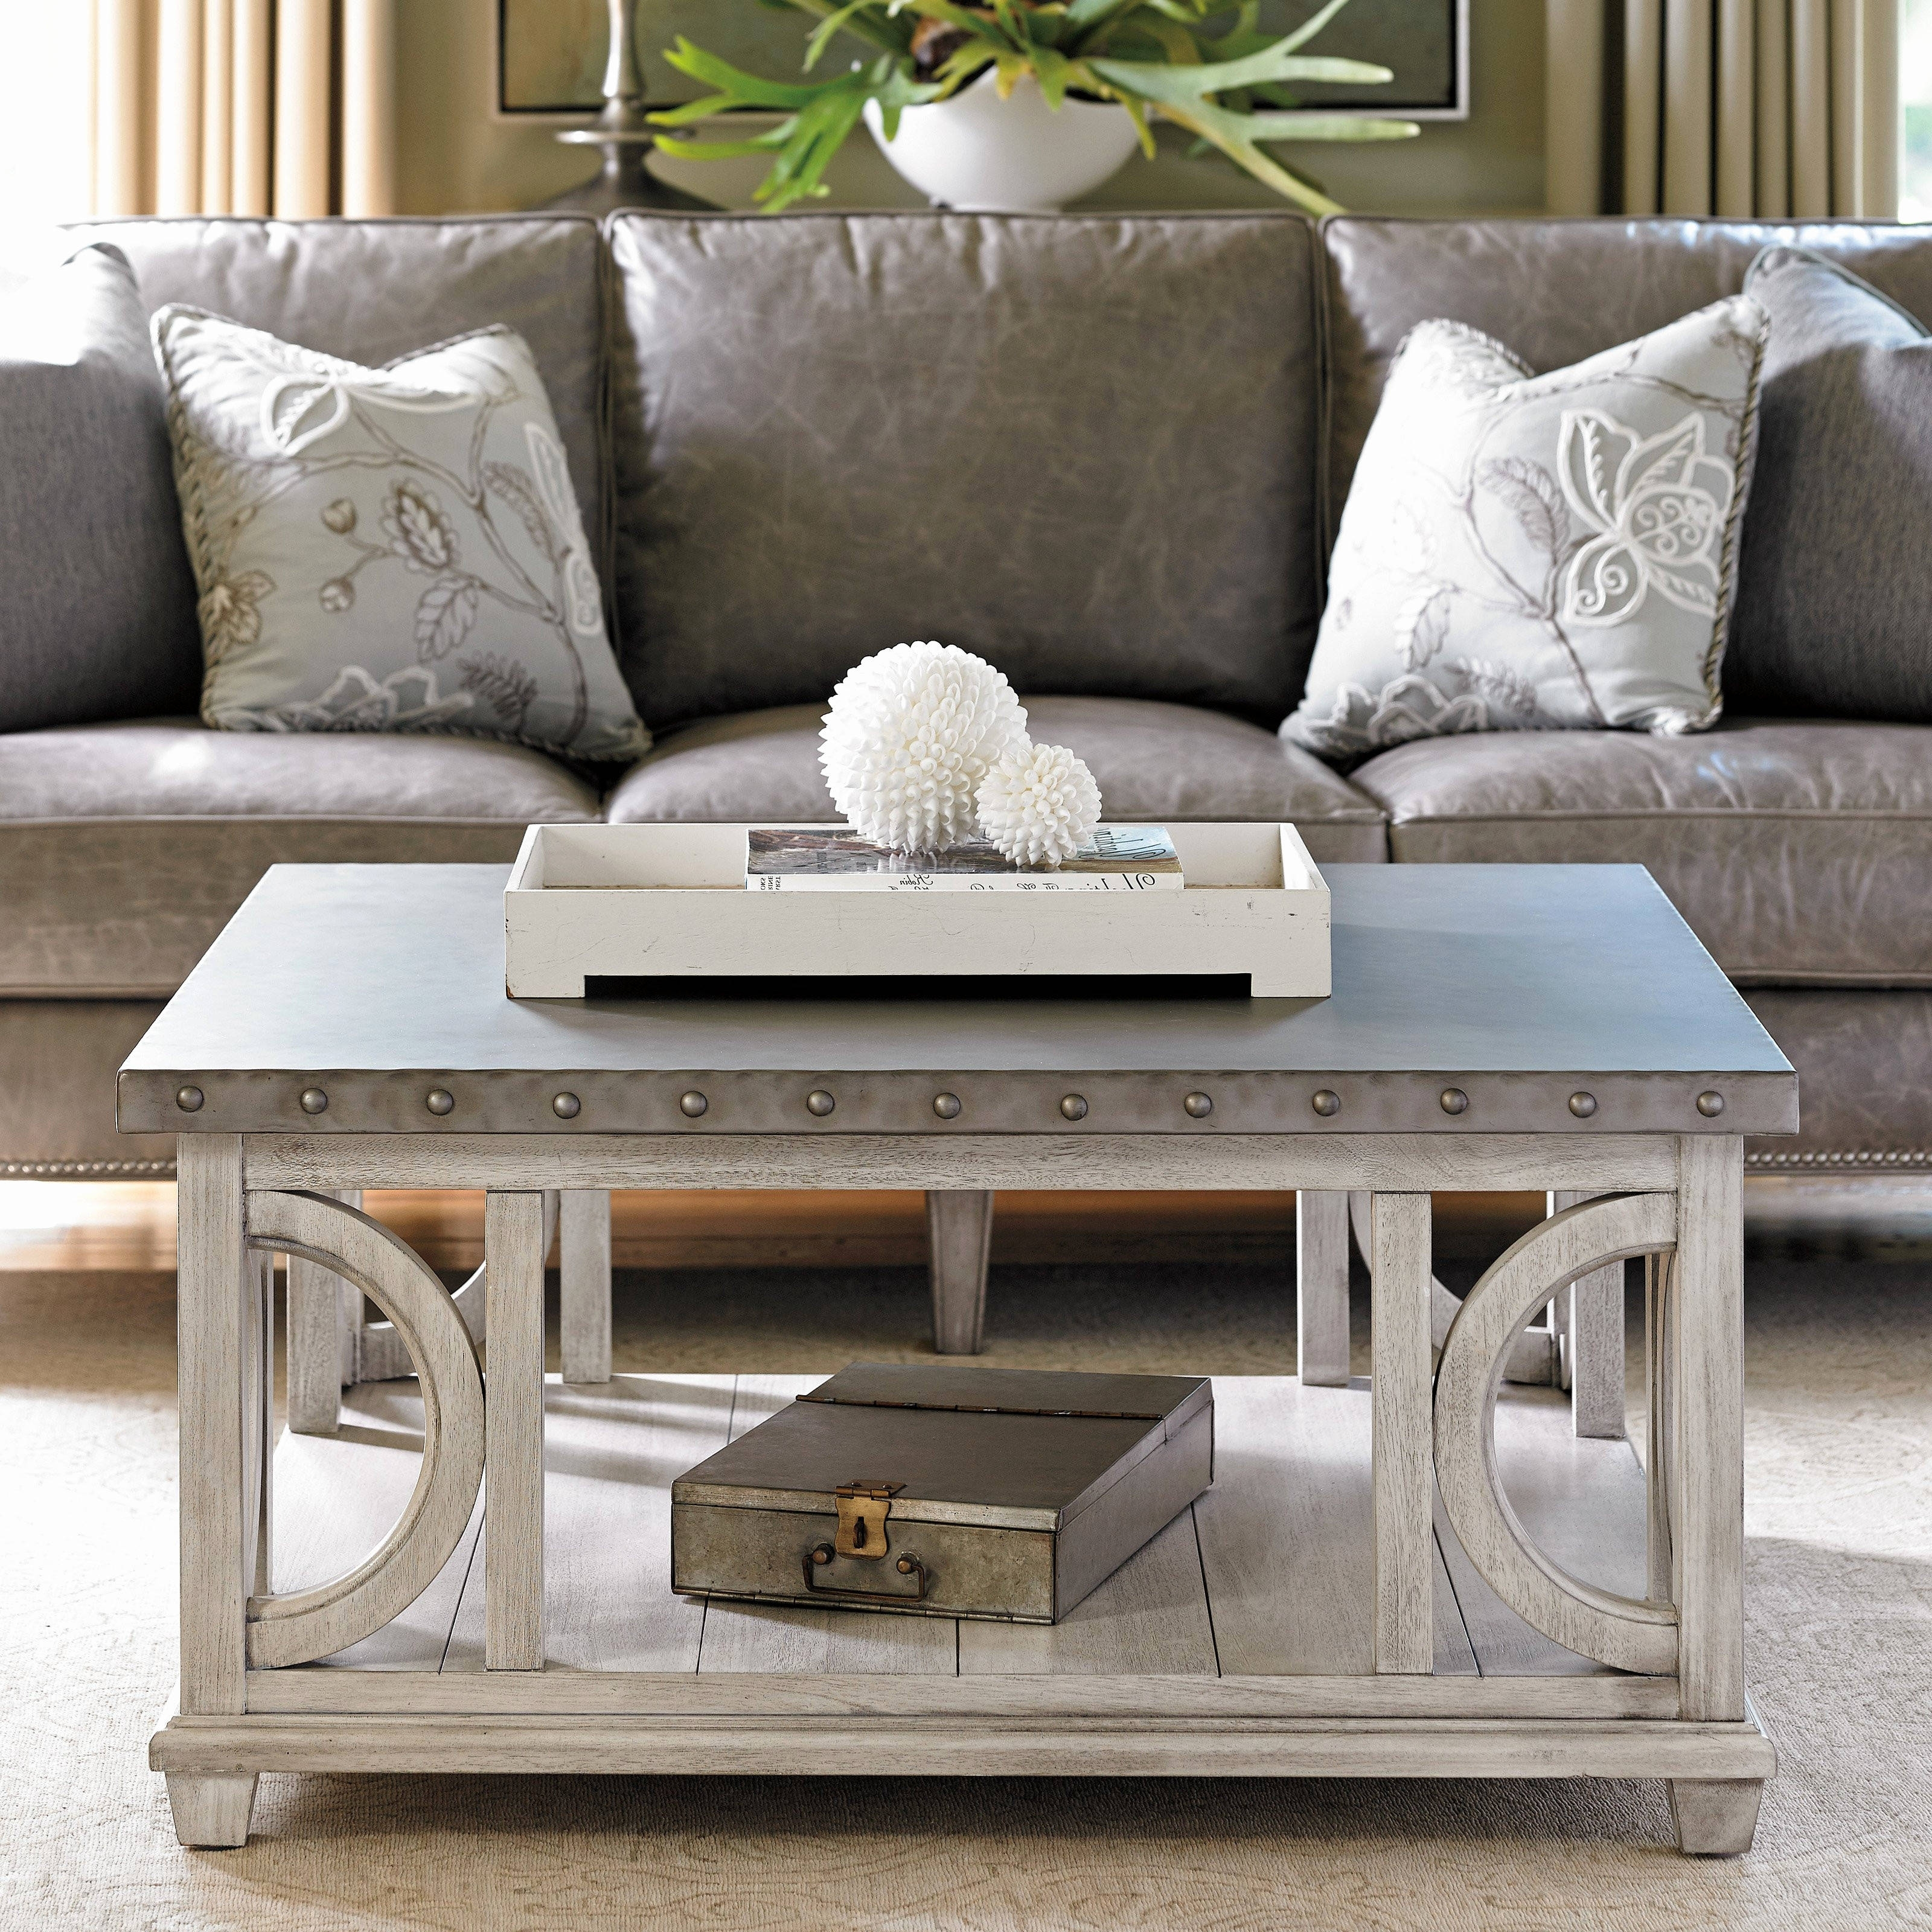 Current Magnolia Home Iron Trestle Cocktail Tables Regarding Joanna Gaines Coffee Table Best Of Magnolia Home Iron Trestle (View 2 of 20)